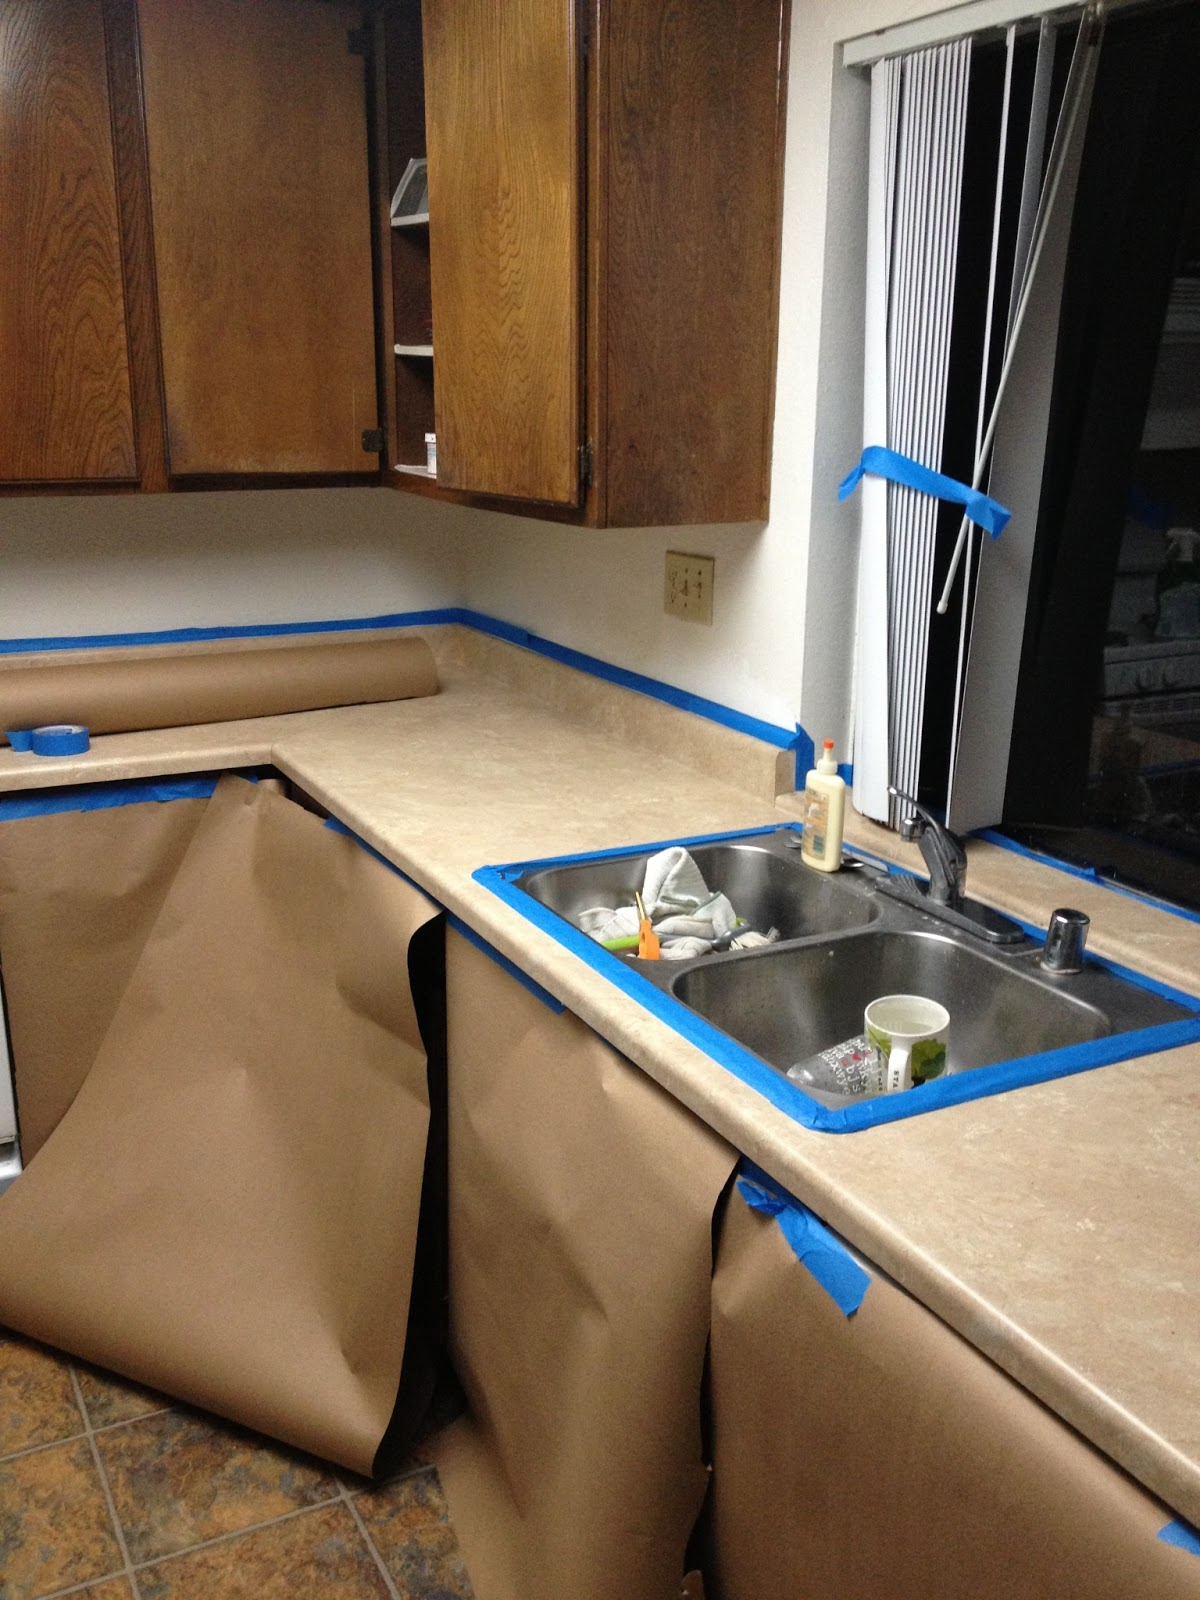 resurface it homeowner swanstone for countertops countertop do ideas prefabricated cheap every edmonton virtually remodel yourself